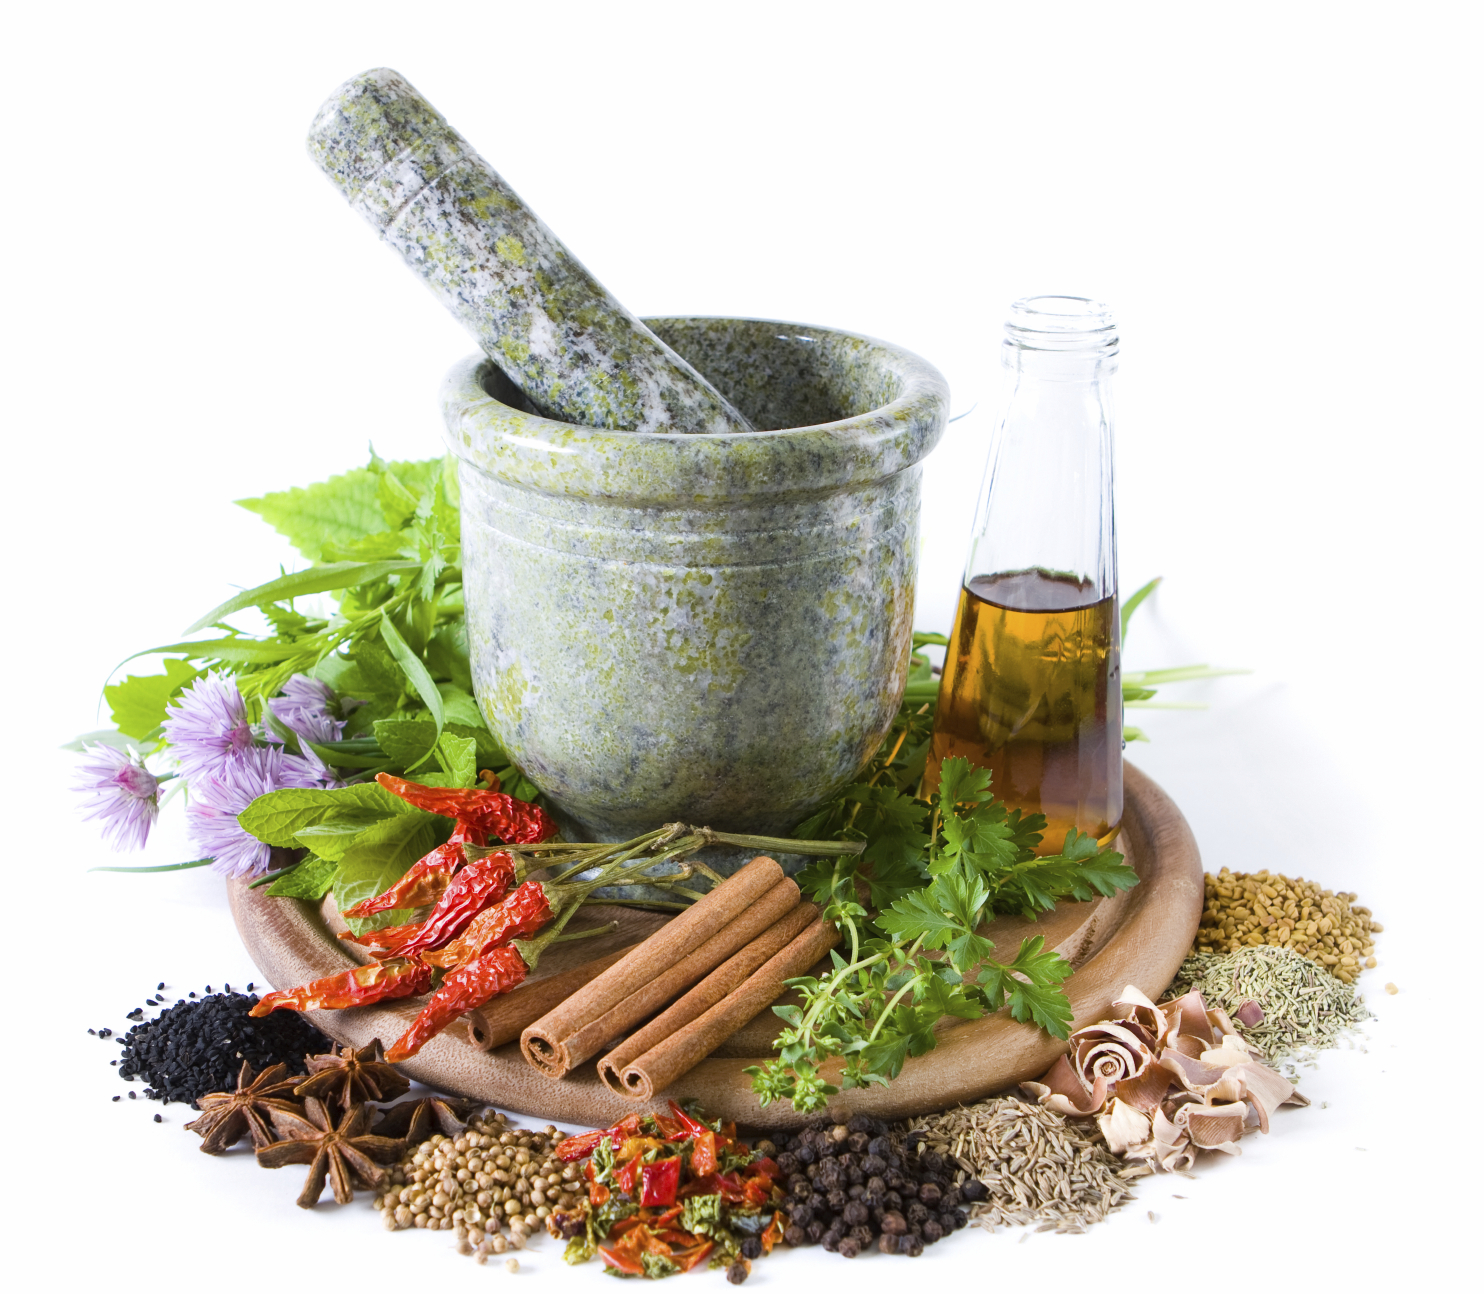 Herbal Remedies for Pain - Dr. Paul Christo MD